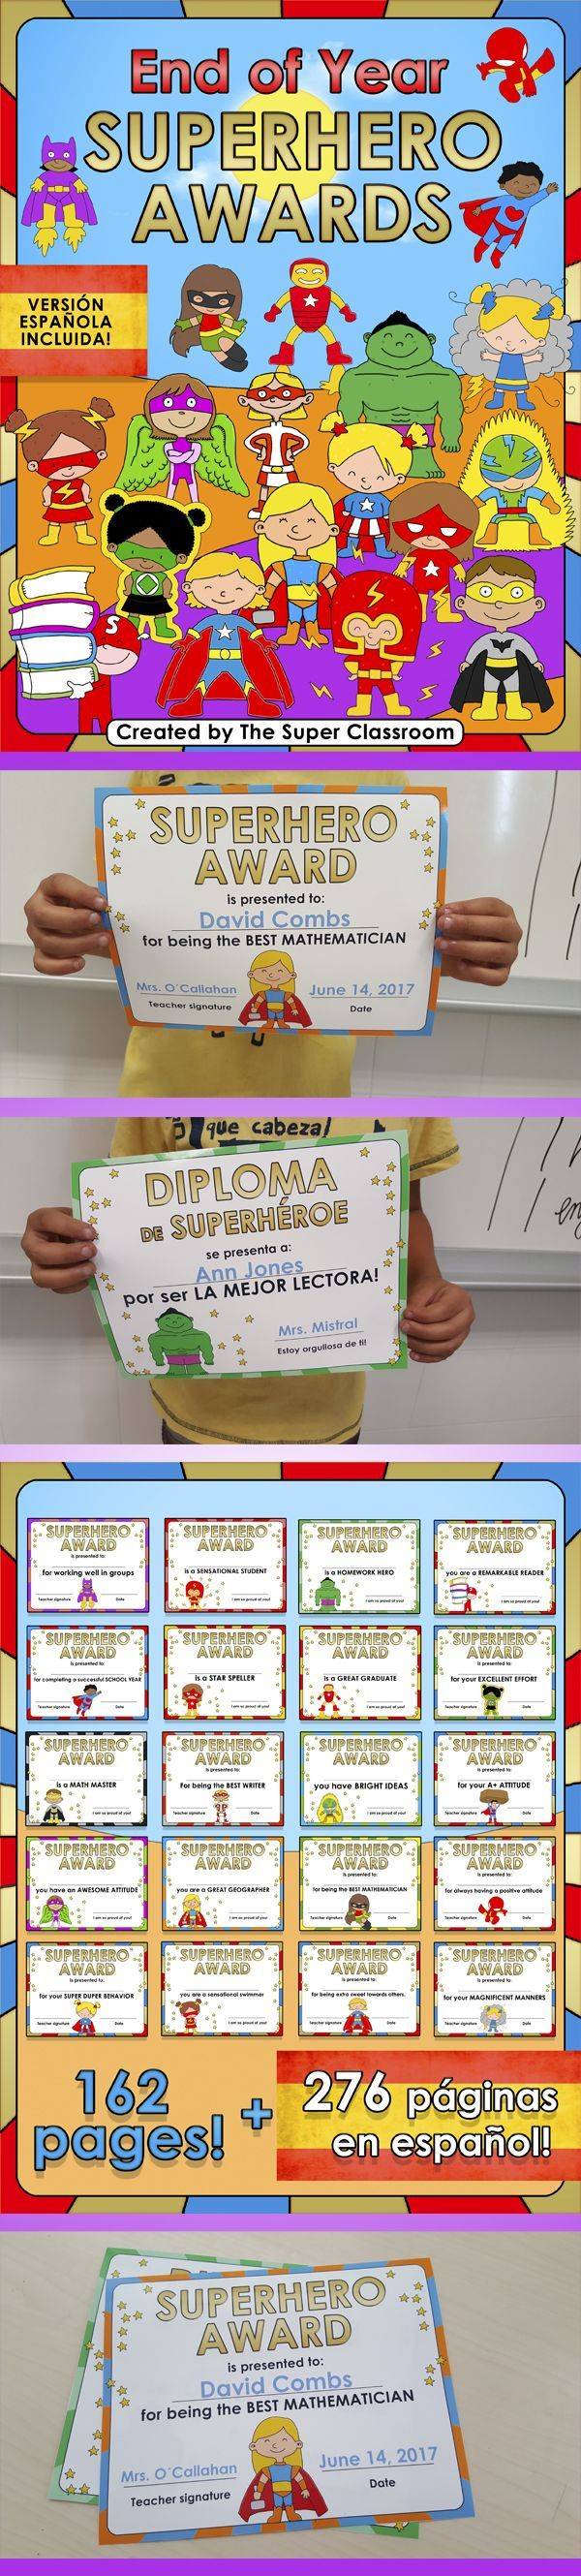 These 124 editable Superhero Awards are an amazing way to celebrate a successful school year! You can type the student name and your name straight onto the awards just by clicking on the text fields. There are also 38 fully customizable awards where you can edit the text, choosing the award name and reason. That makes a total of 162 pages! También se incluye la versión española de este material. Se incluyen 59 diplomas totalmente personalizables y 218 diplomas!